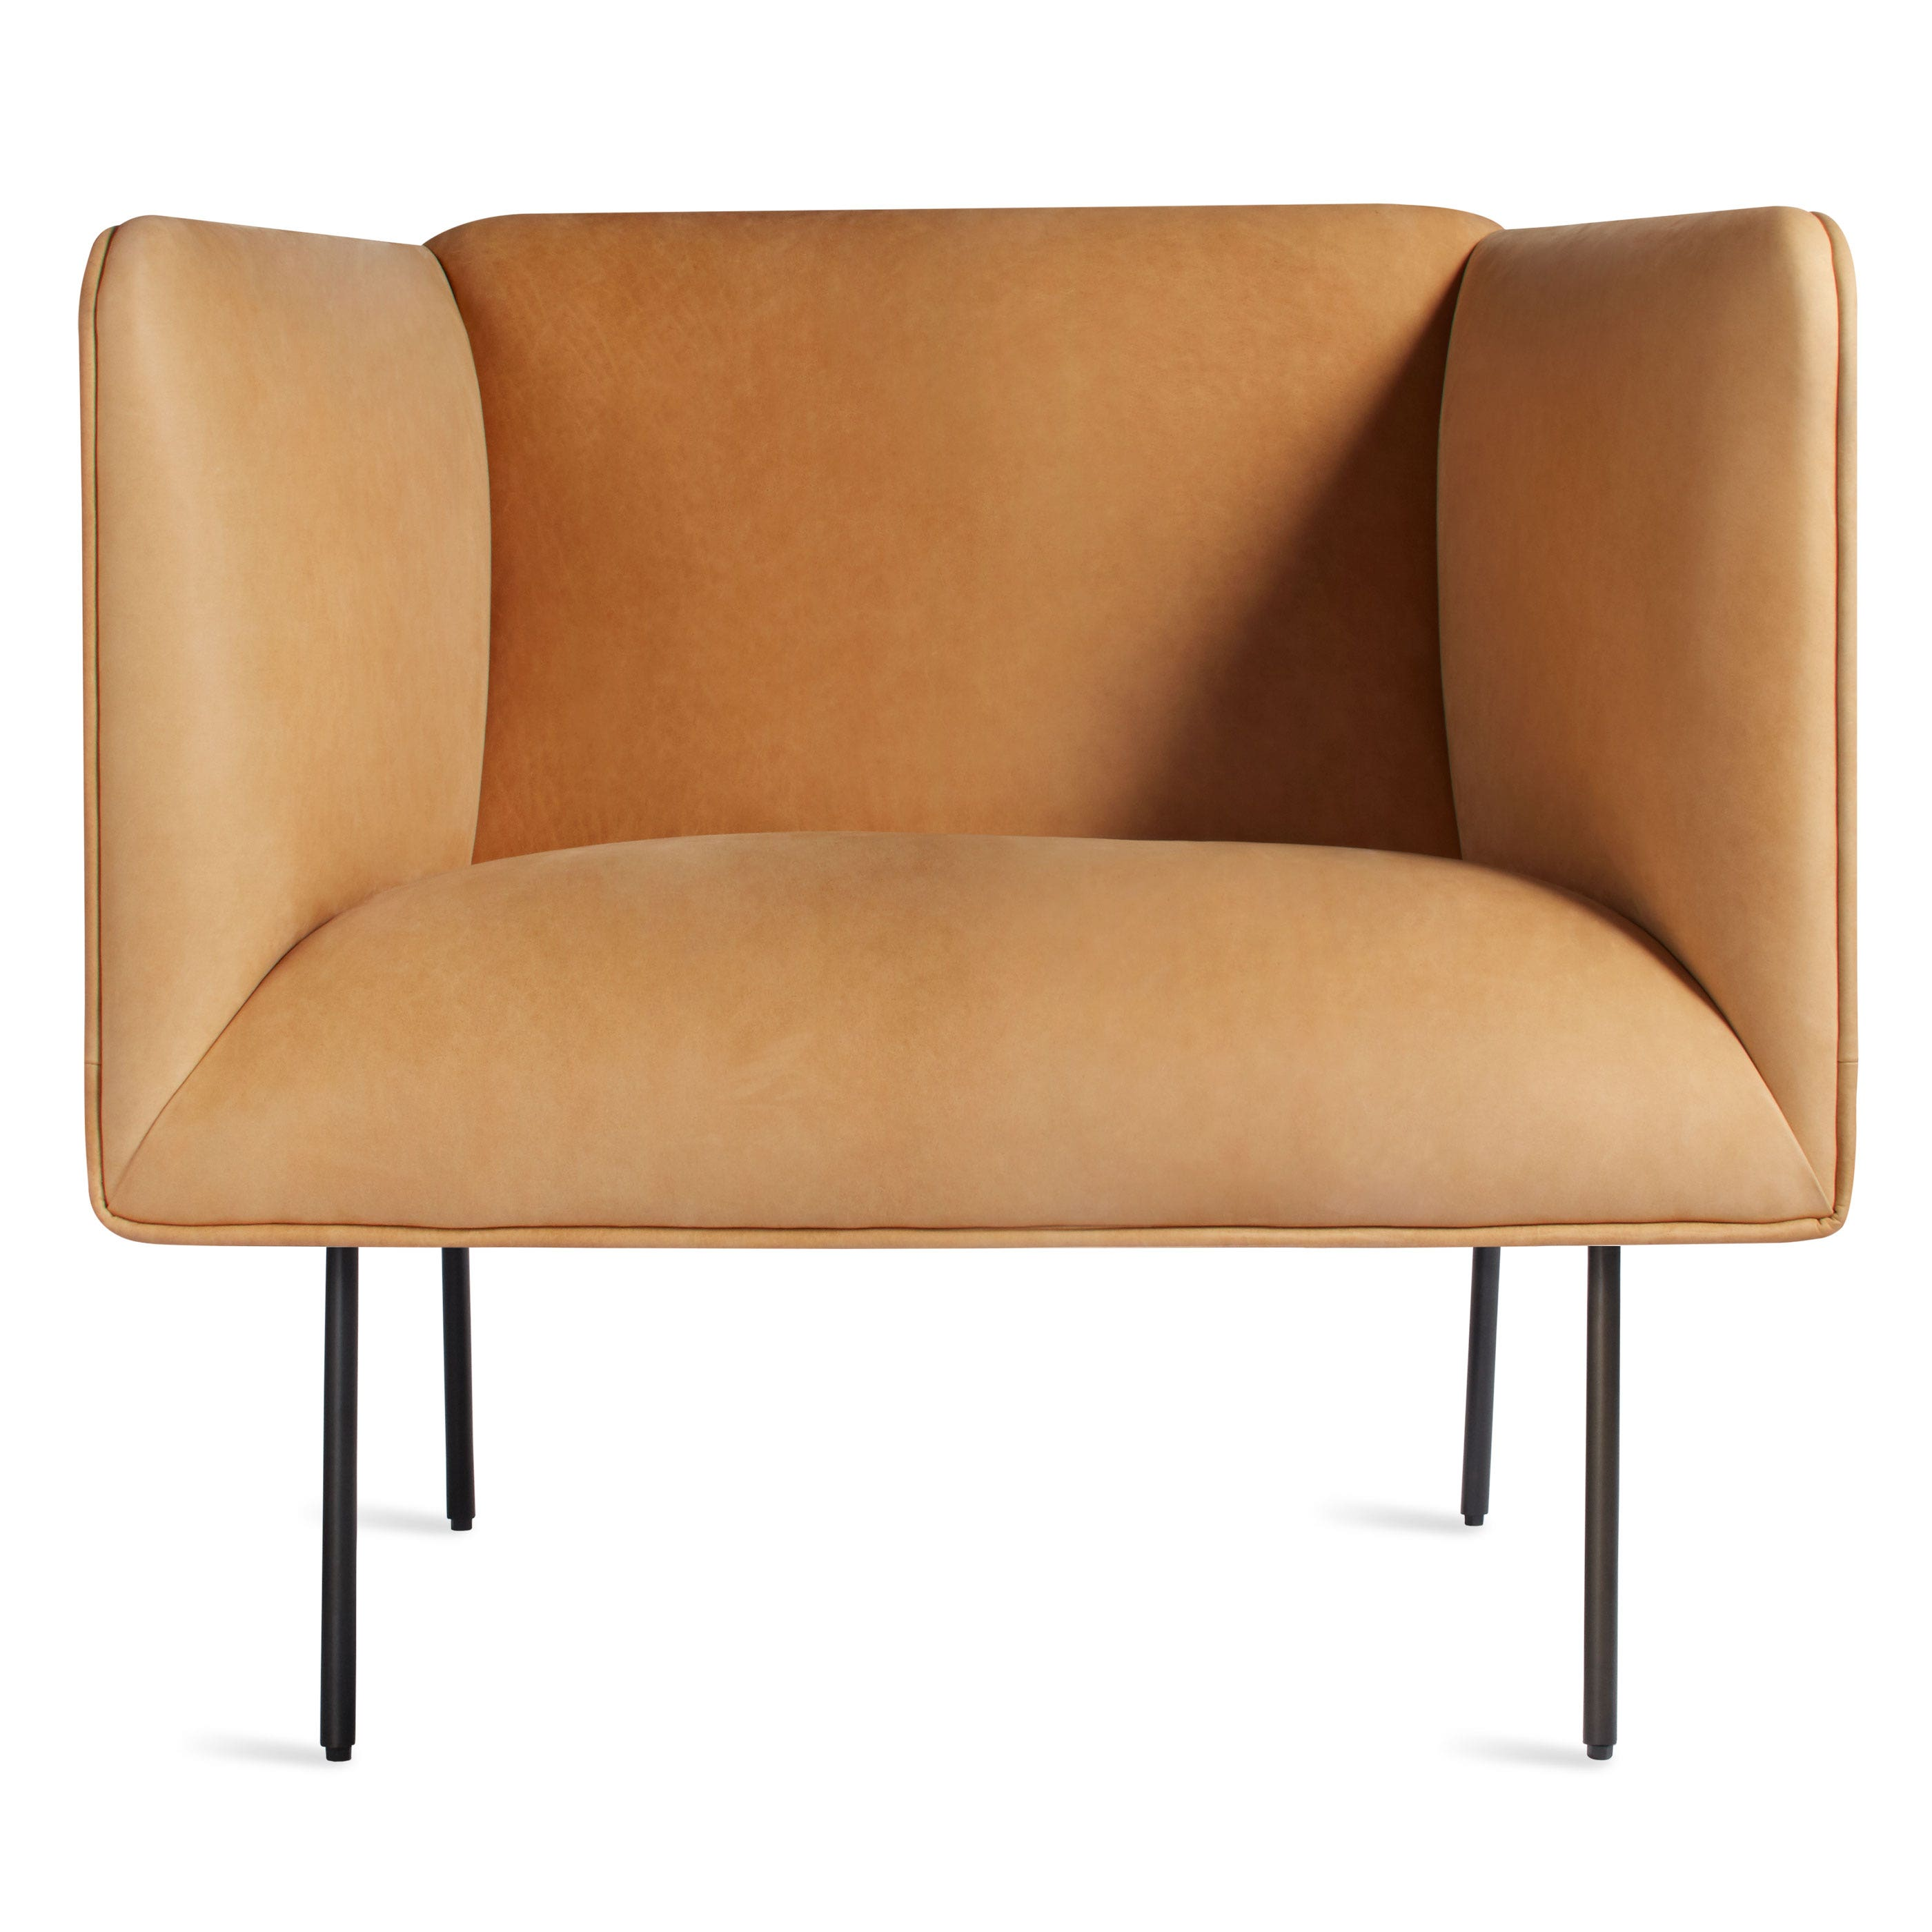 http://d2nfdohdbzm5u6.cloudfront.net/media/catalog/product/d/n/dn1_lngchr_ca_dandy-louge-chair-camel-leather.jpg